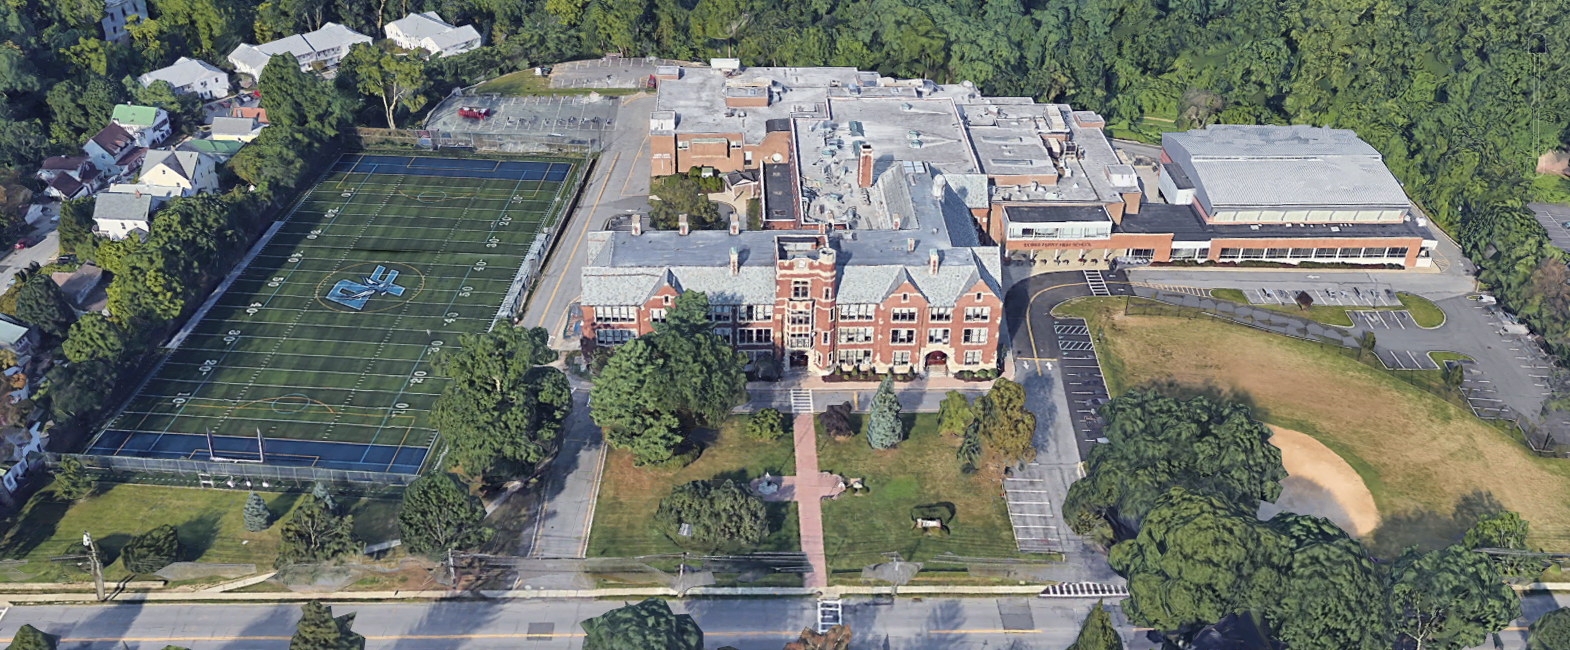 Dobbs Ferry Middle School and High School Campus in the Dobbs Ferry School District in Dobbs Ferry, New York